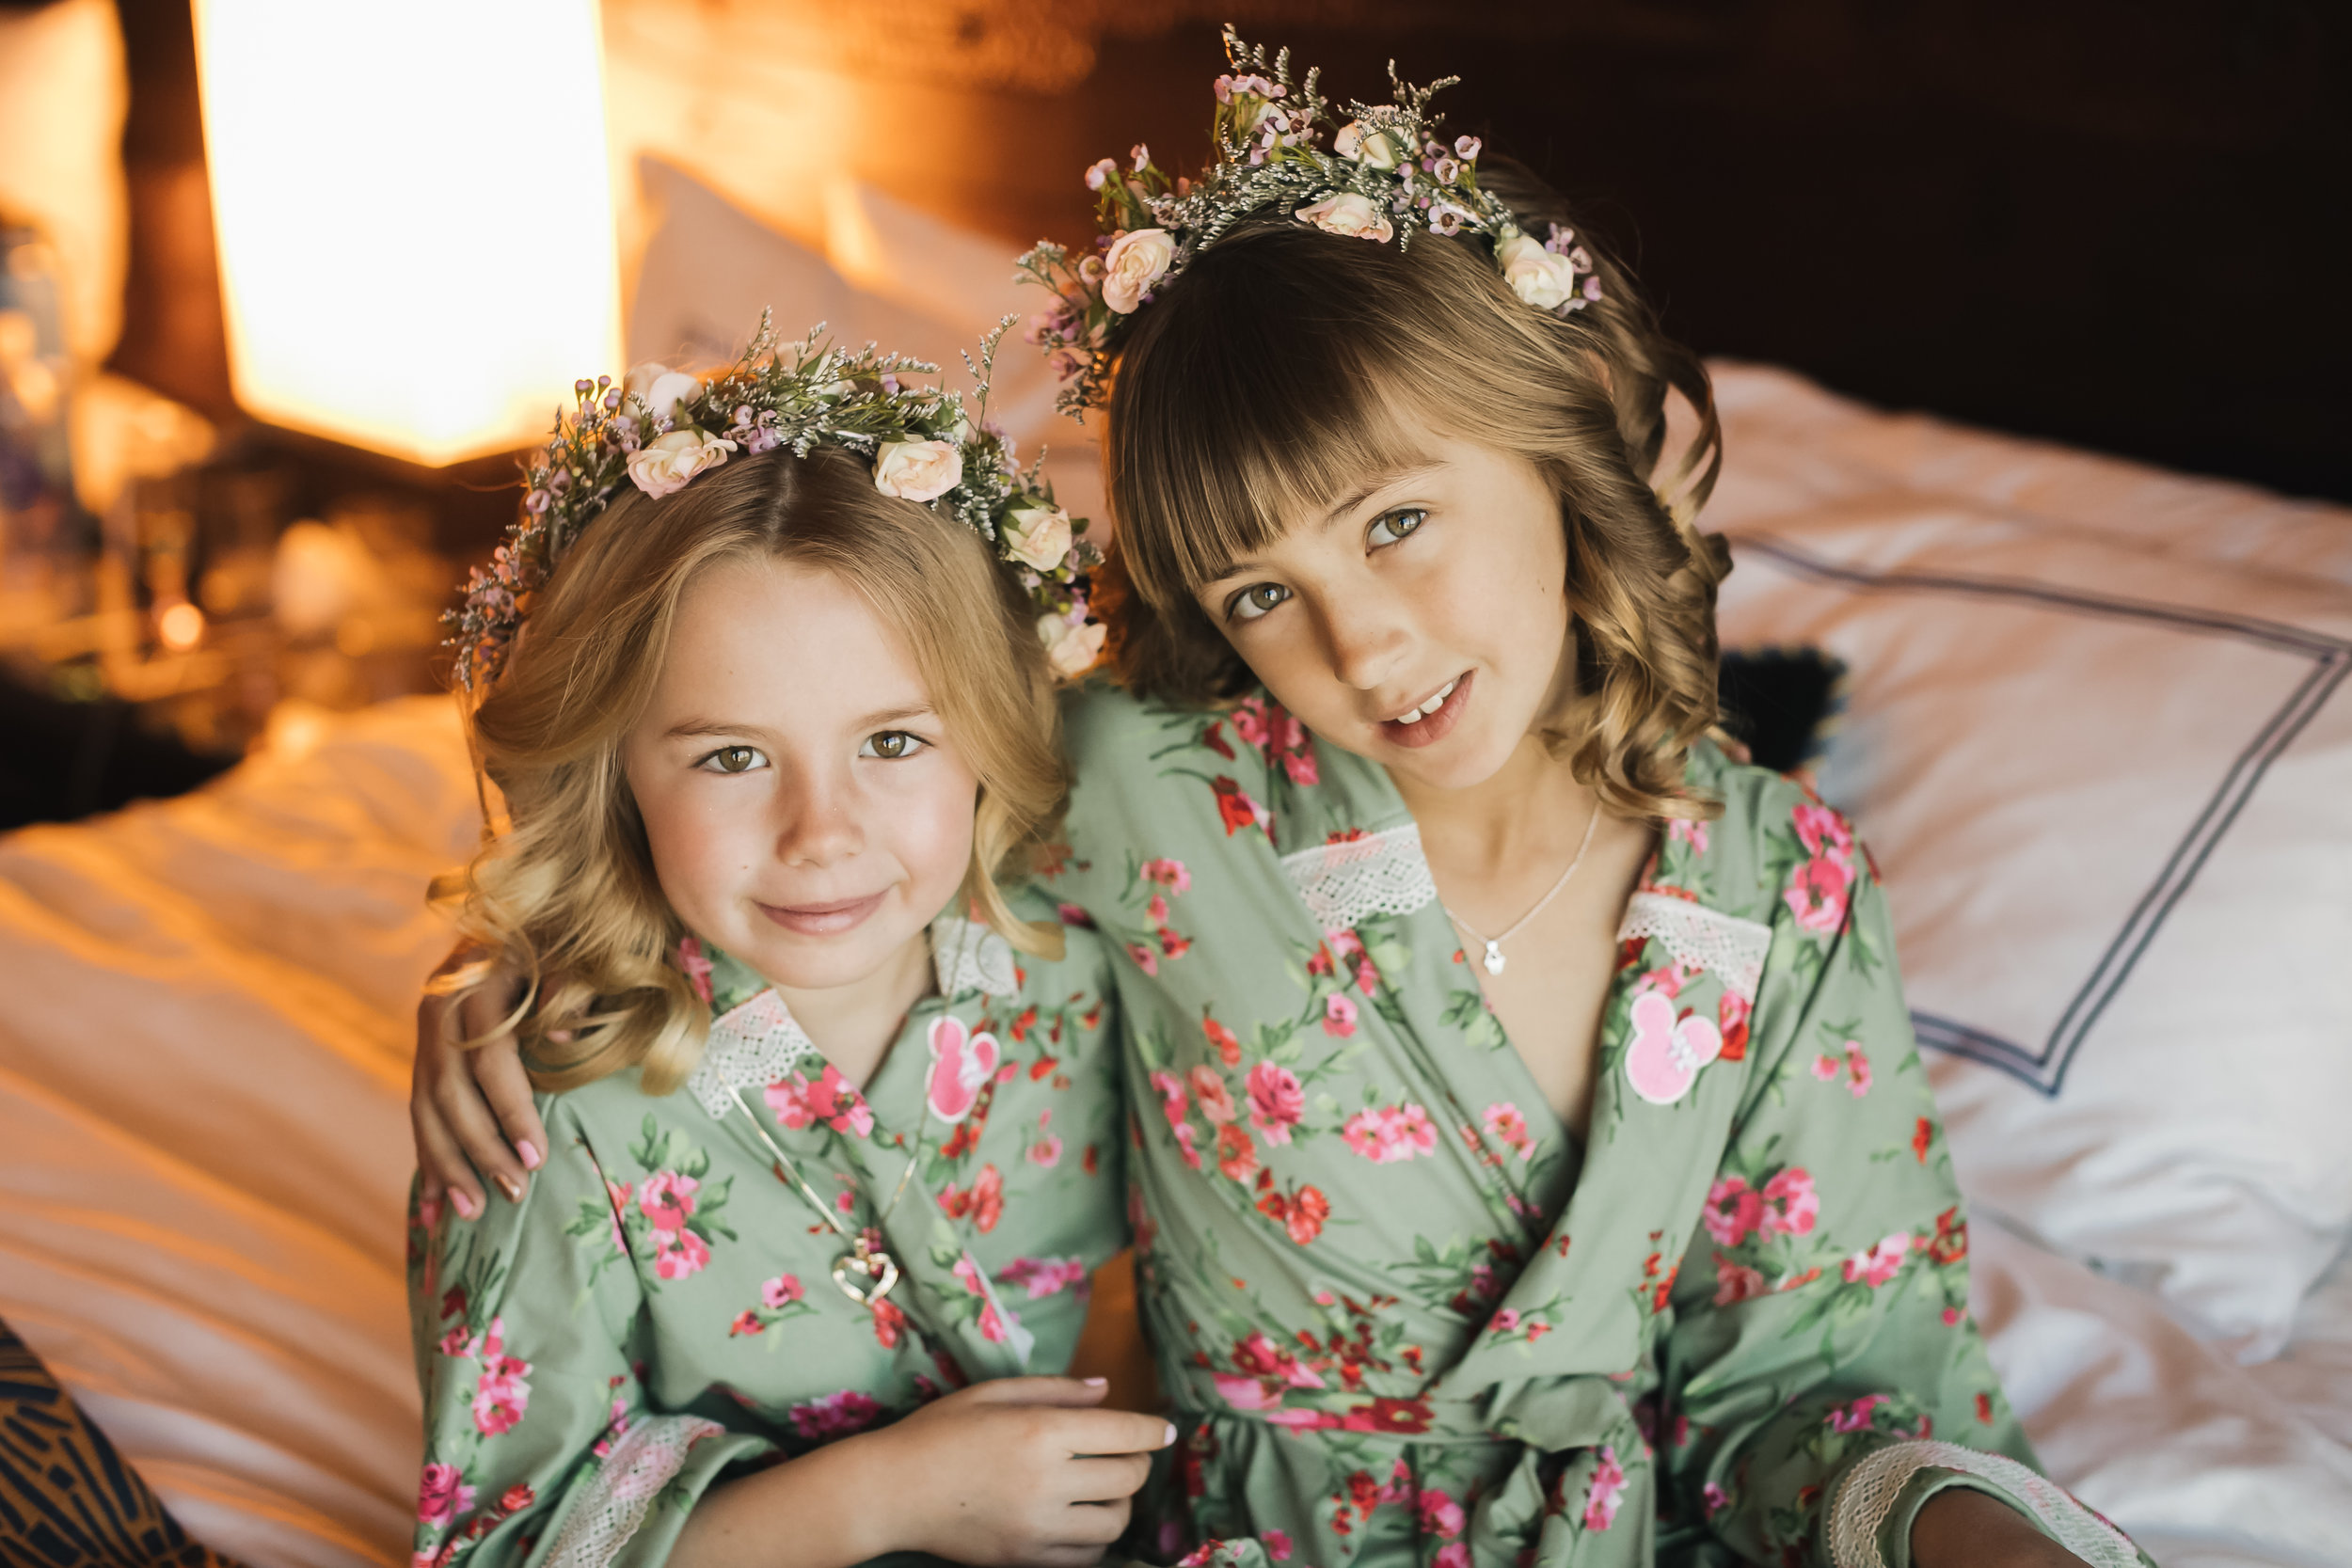 Adorable flower girls for Disney wedding. Hair & makeup by Vanity Belle in Orange County (Costa Mesa) and San Diego (La Jolla). www.thevanitybelle.com